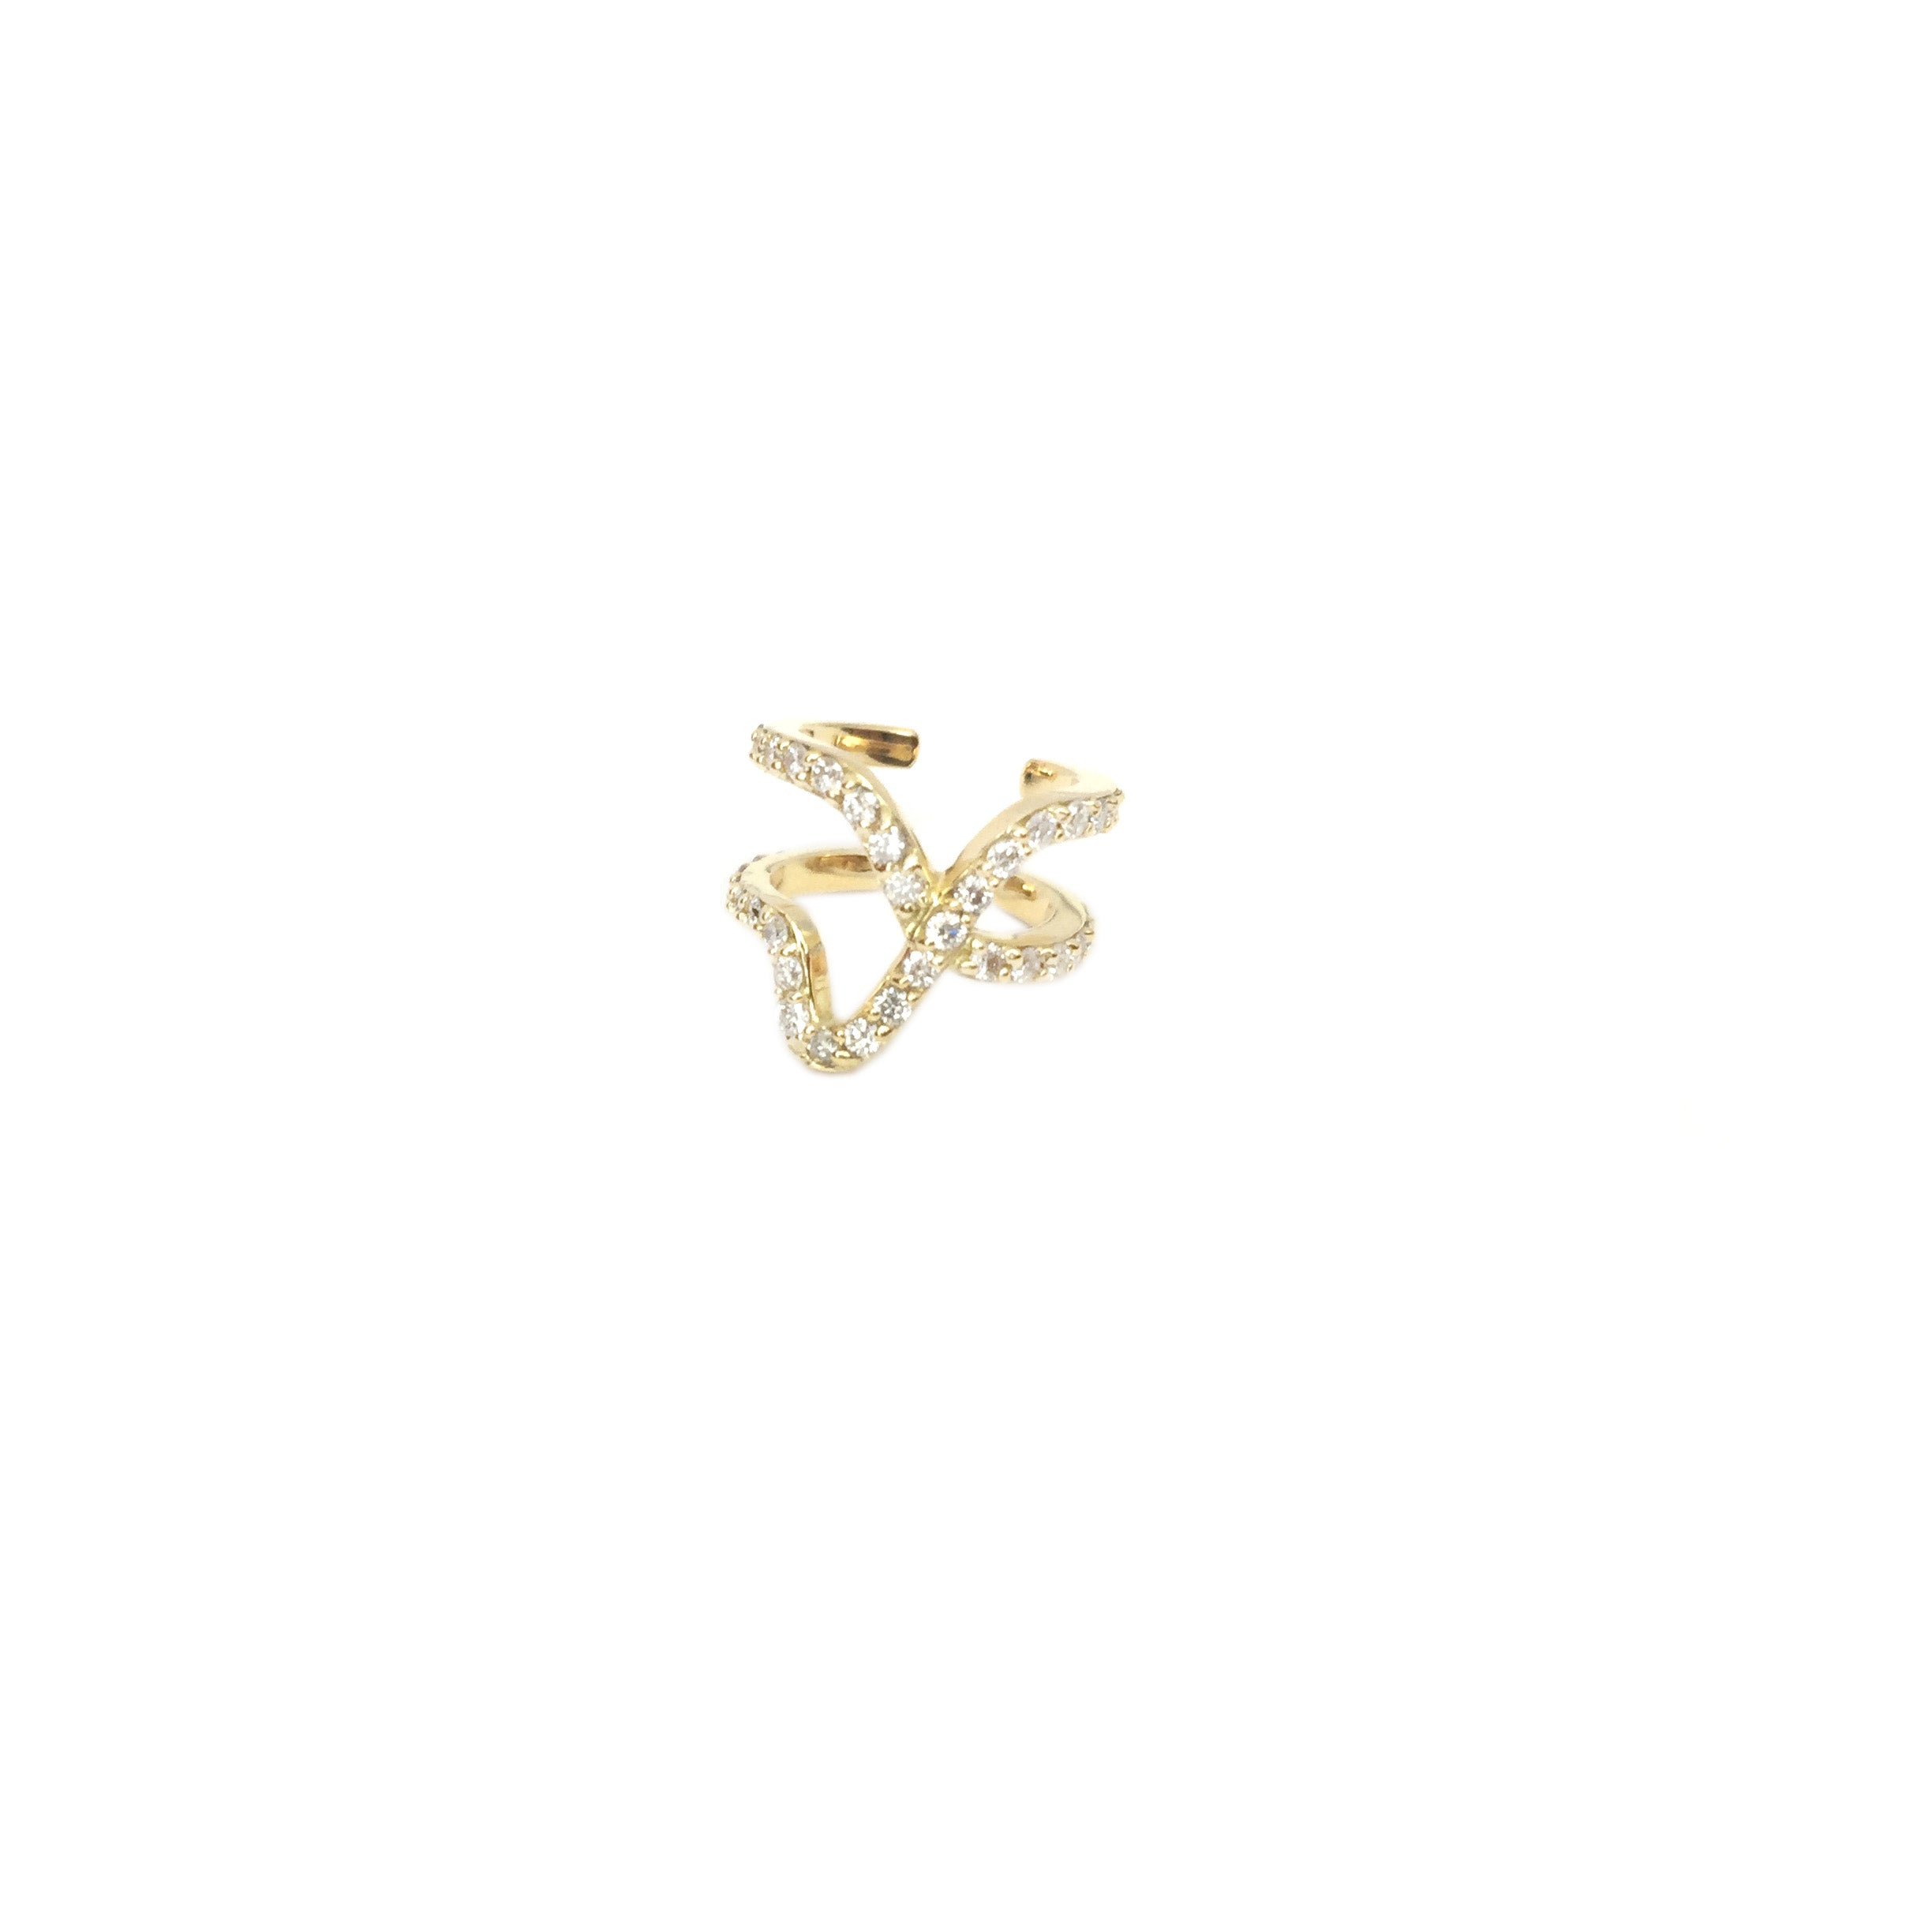 TPLT Mini Overlapping Diamond Pave Ear Cuff